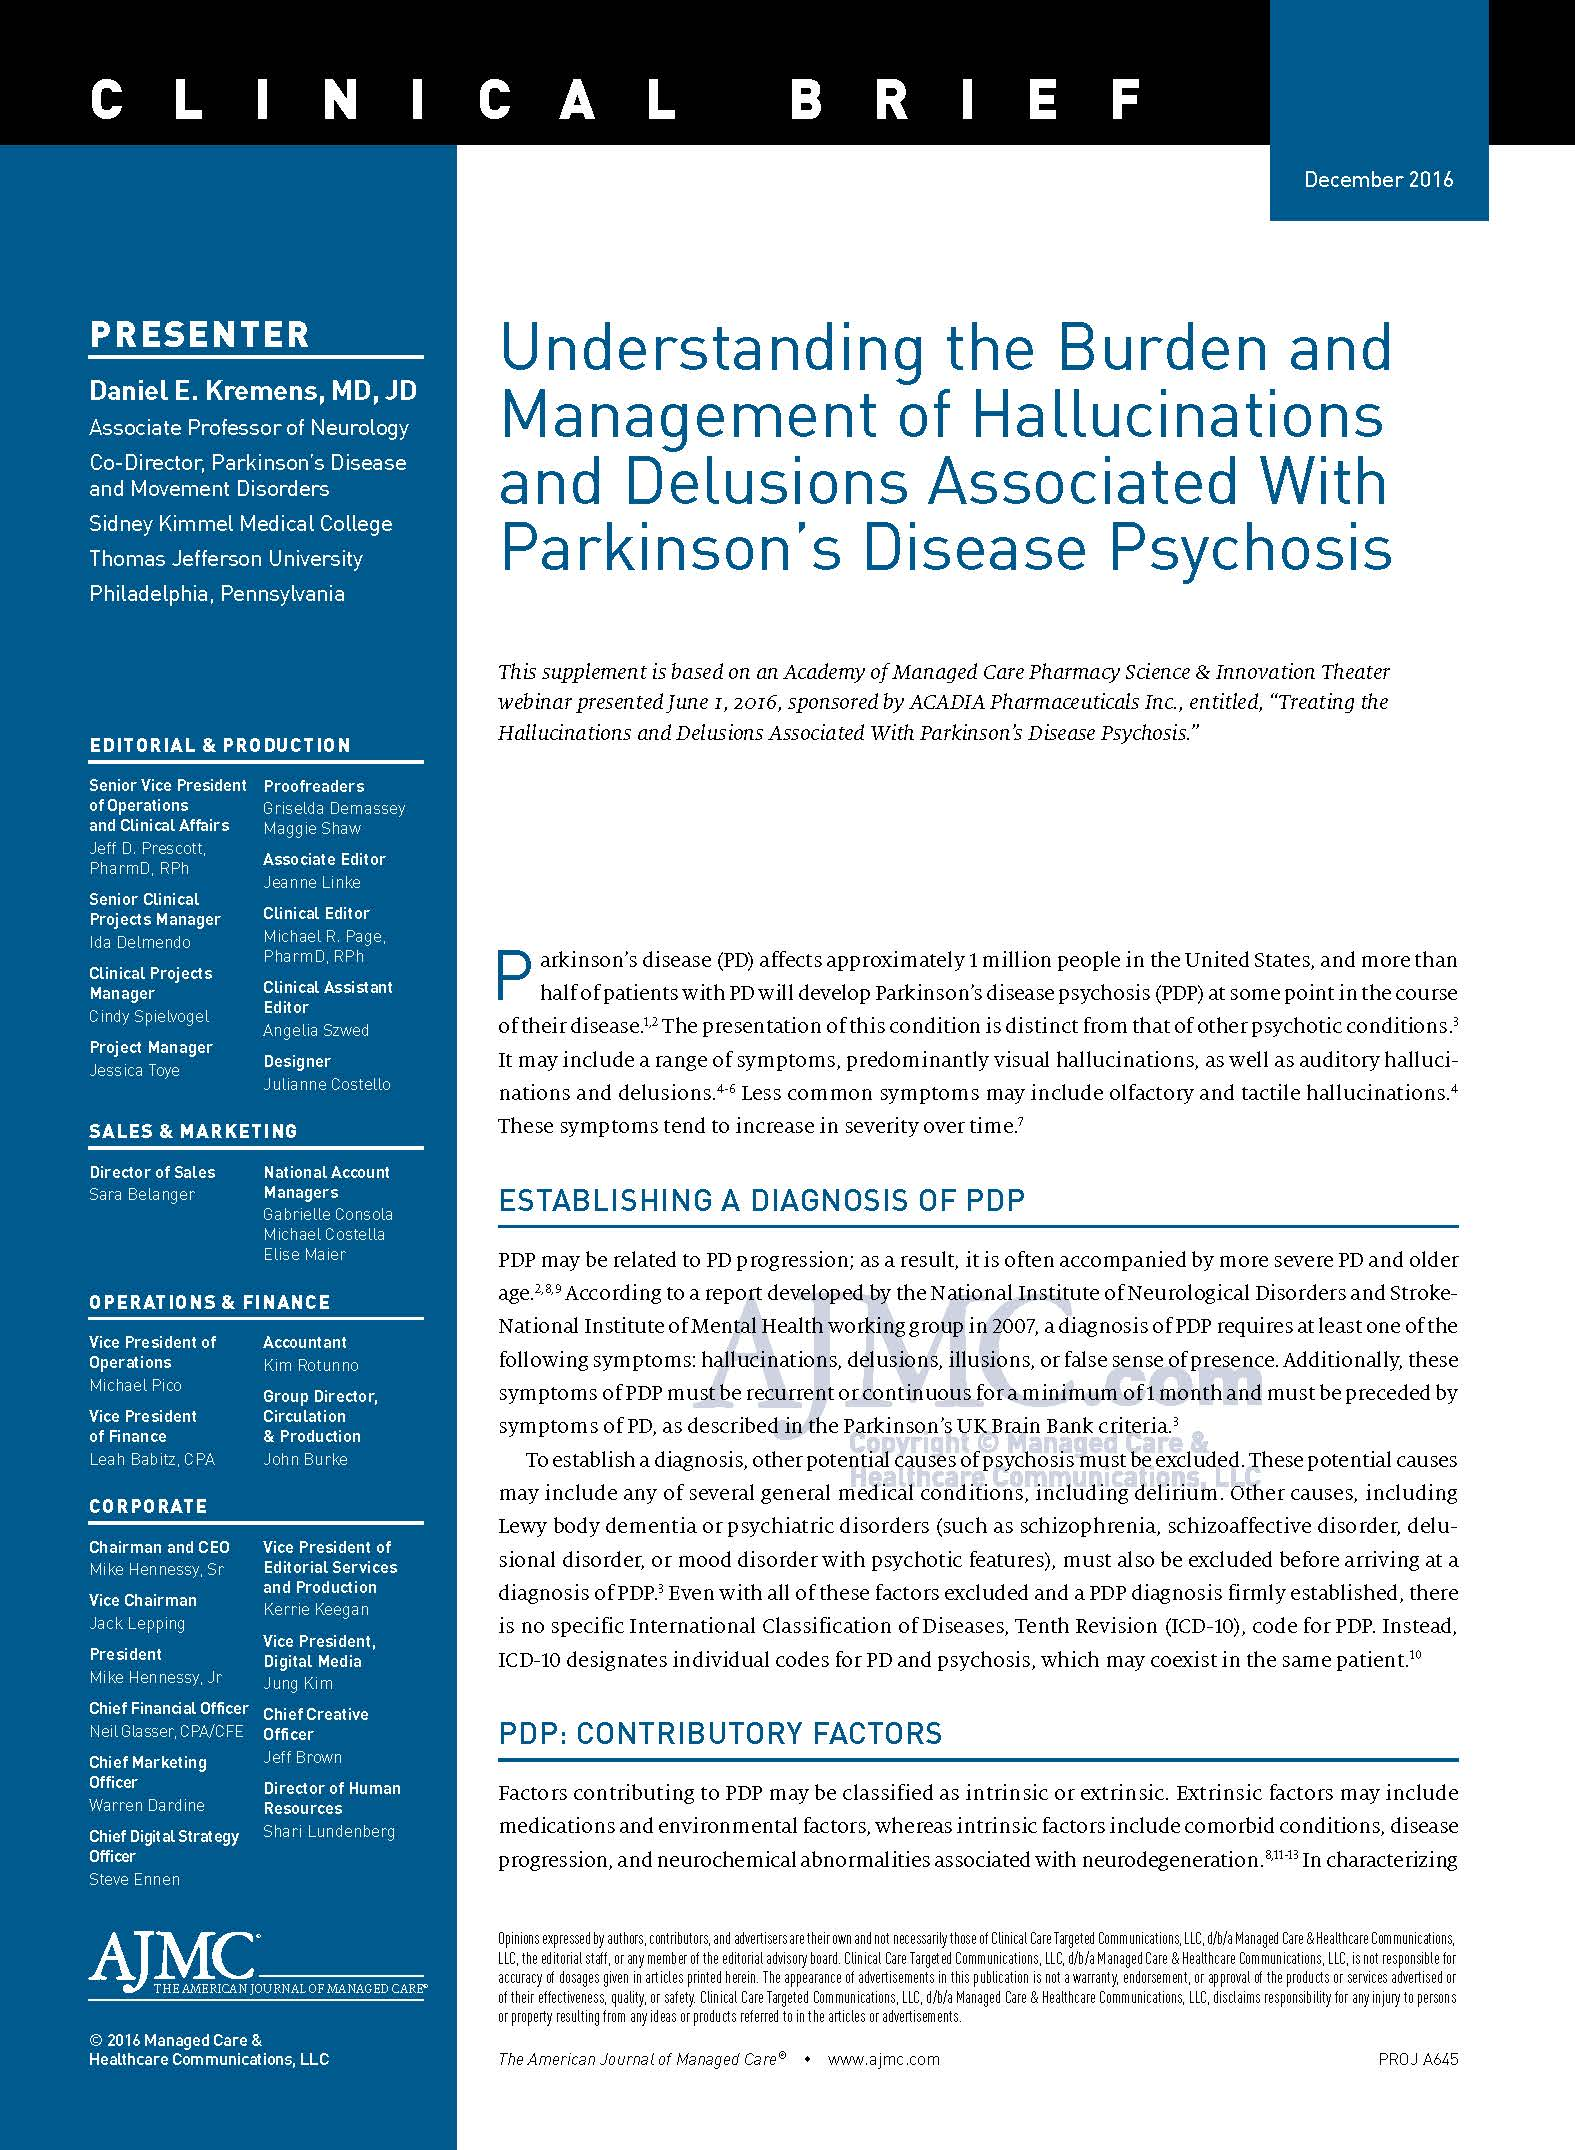 Understanding the Burden and Management of Hallucinations and Delusions Associated With Parkinson's Disease Psychosis